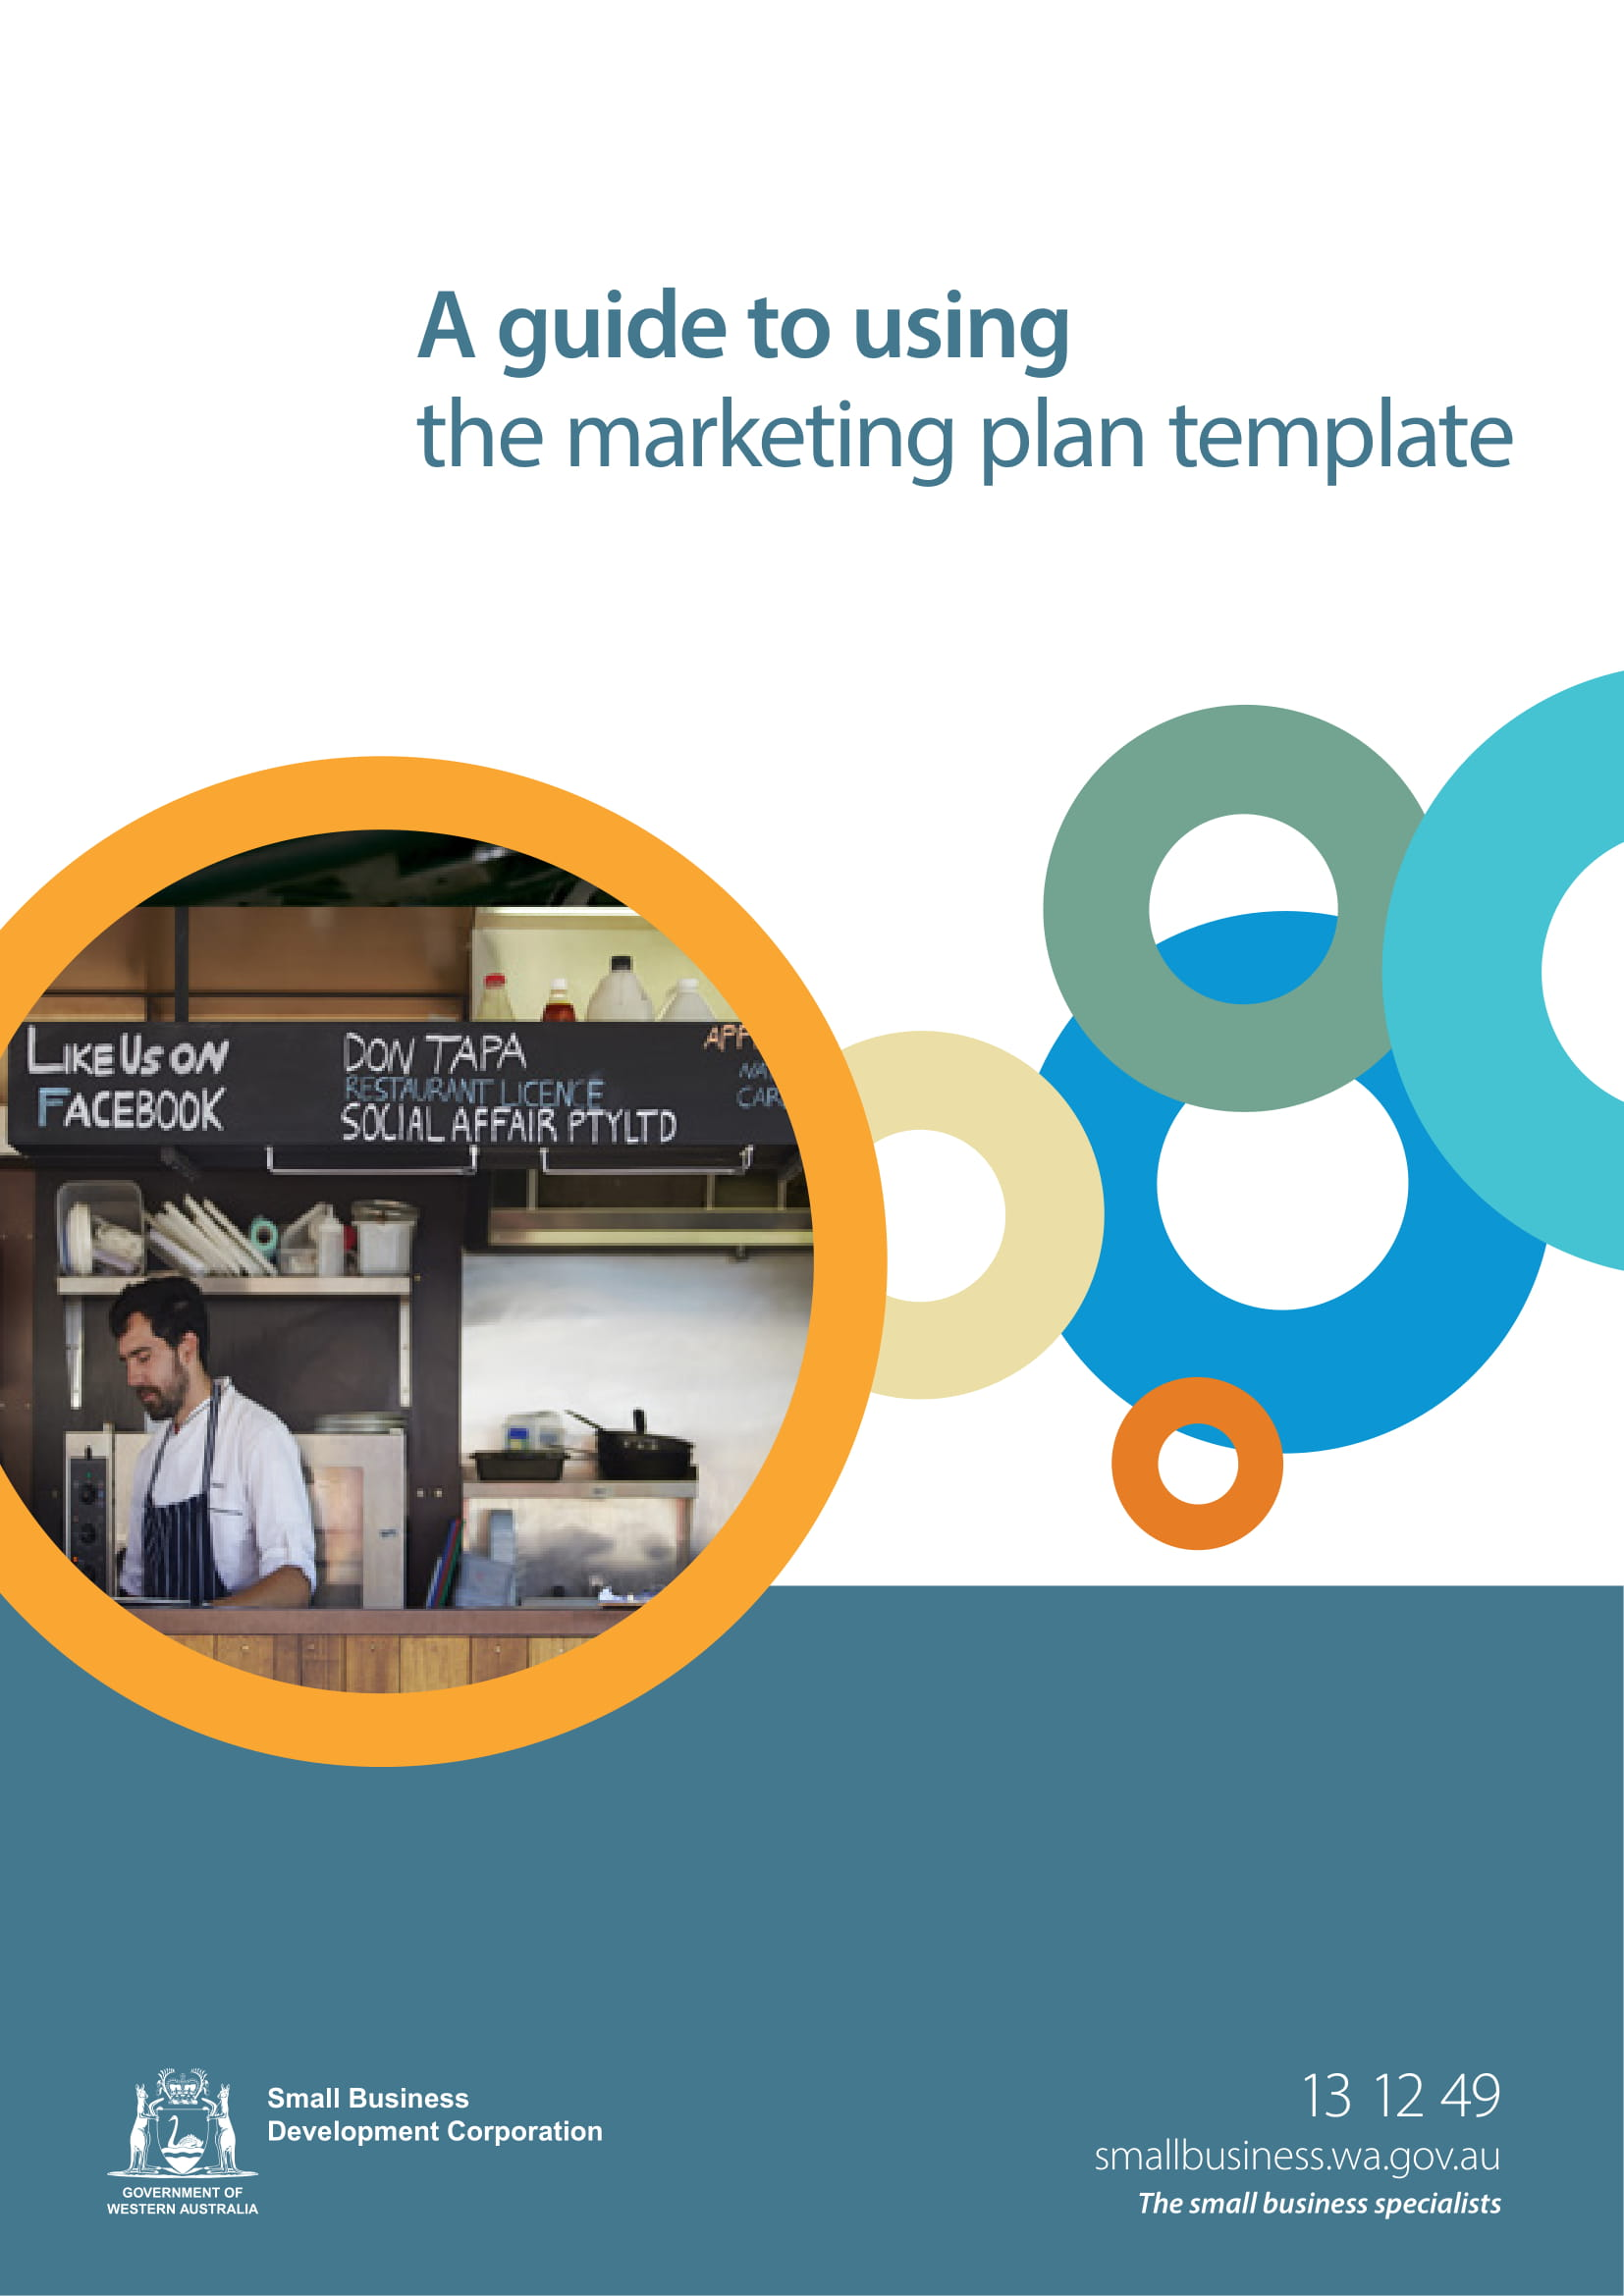 strategic marketing plan template guide example 1